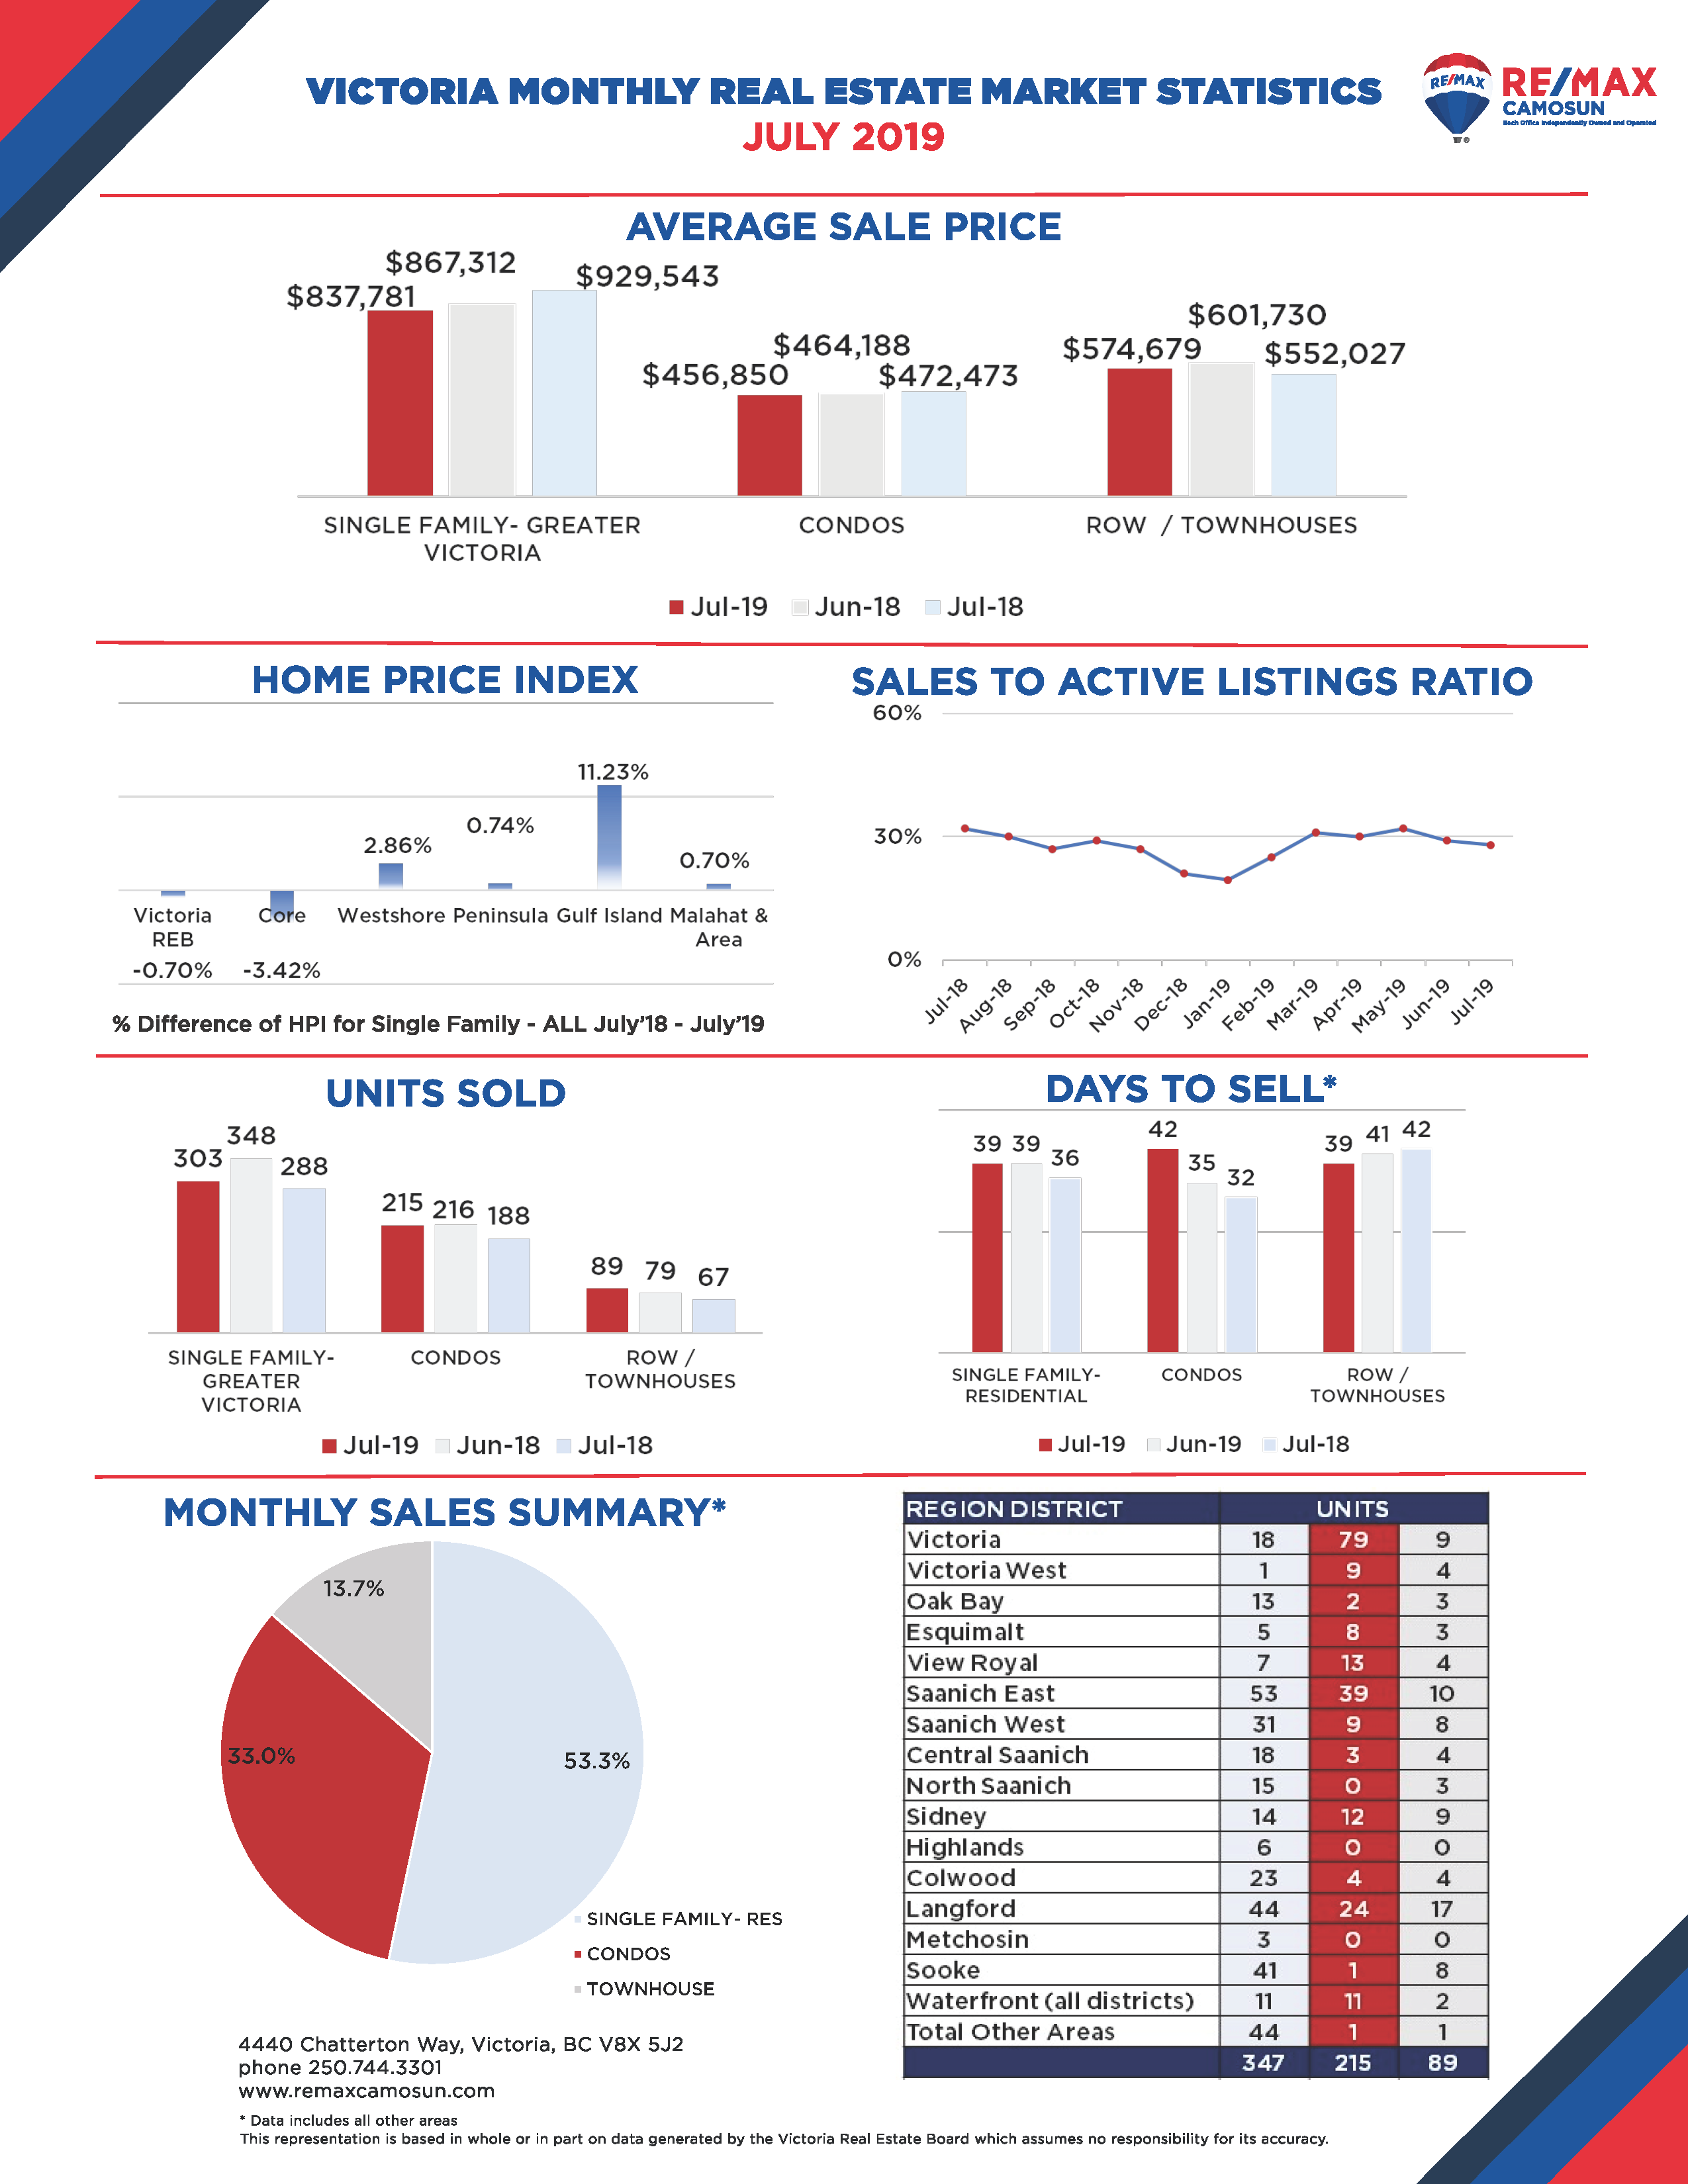 July 2019 Victoria Monthly Real Estate Market Stats